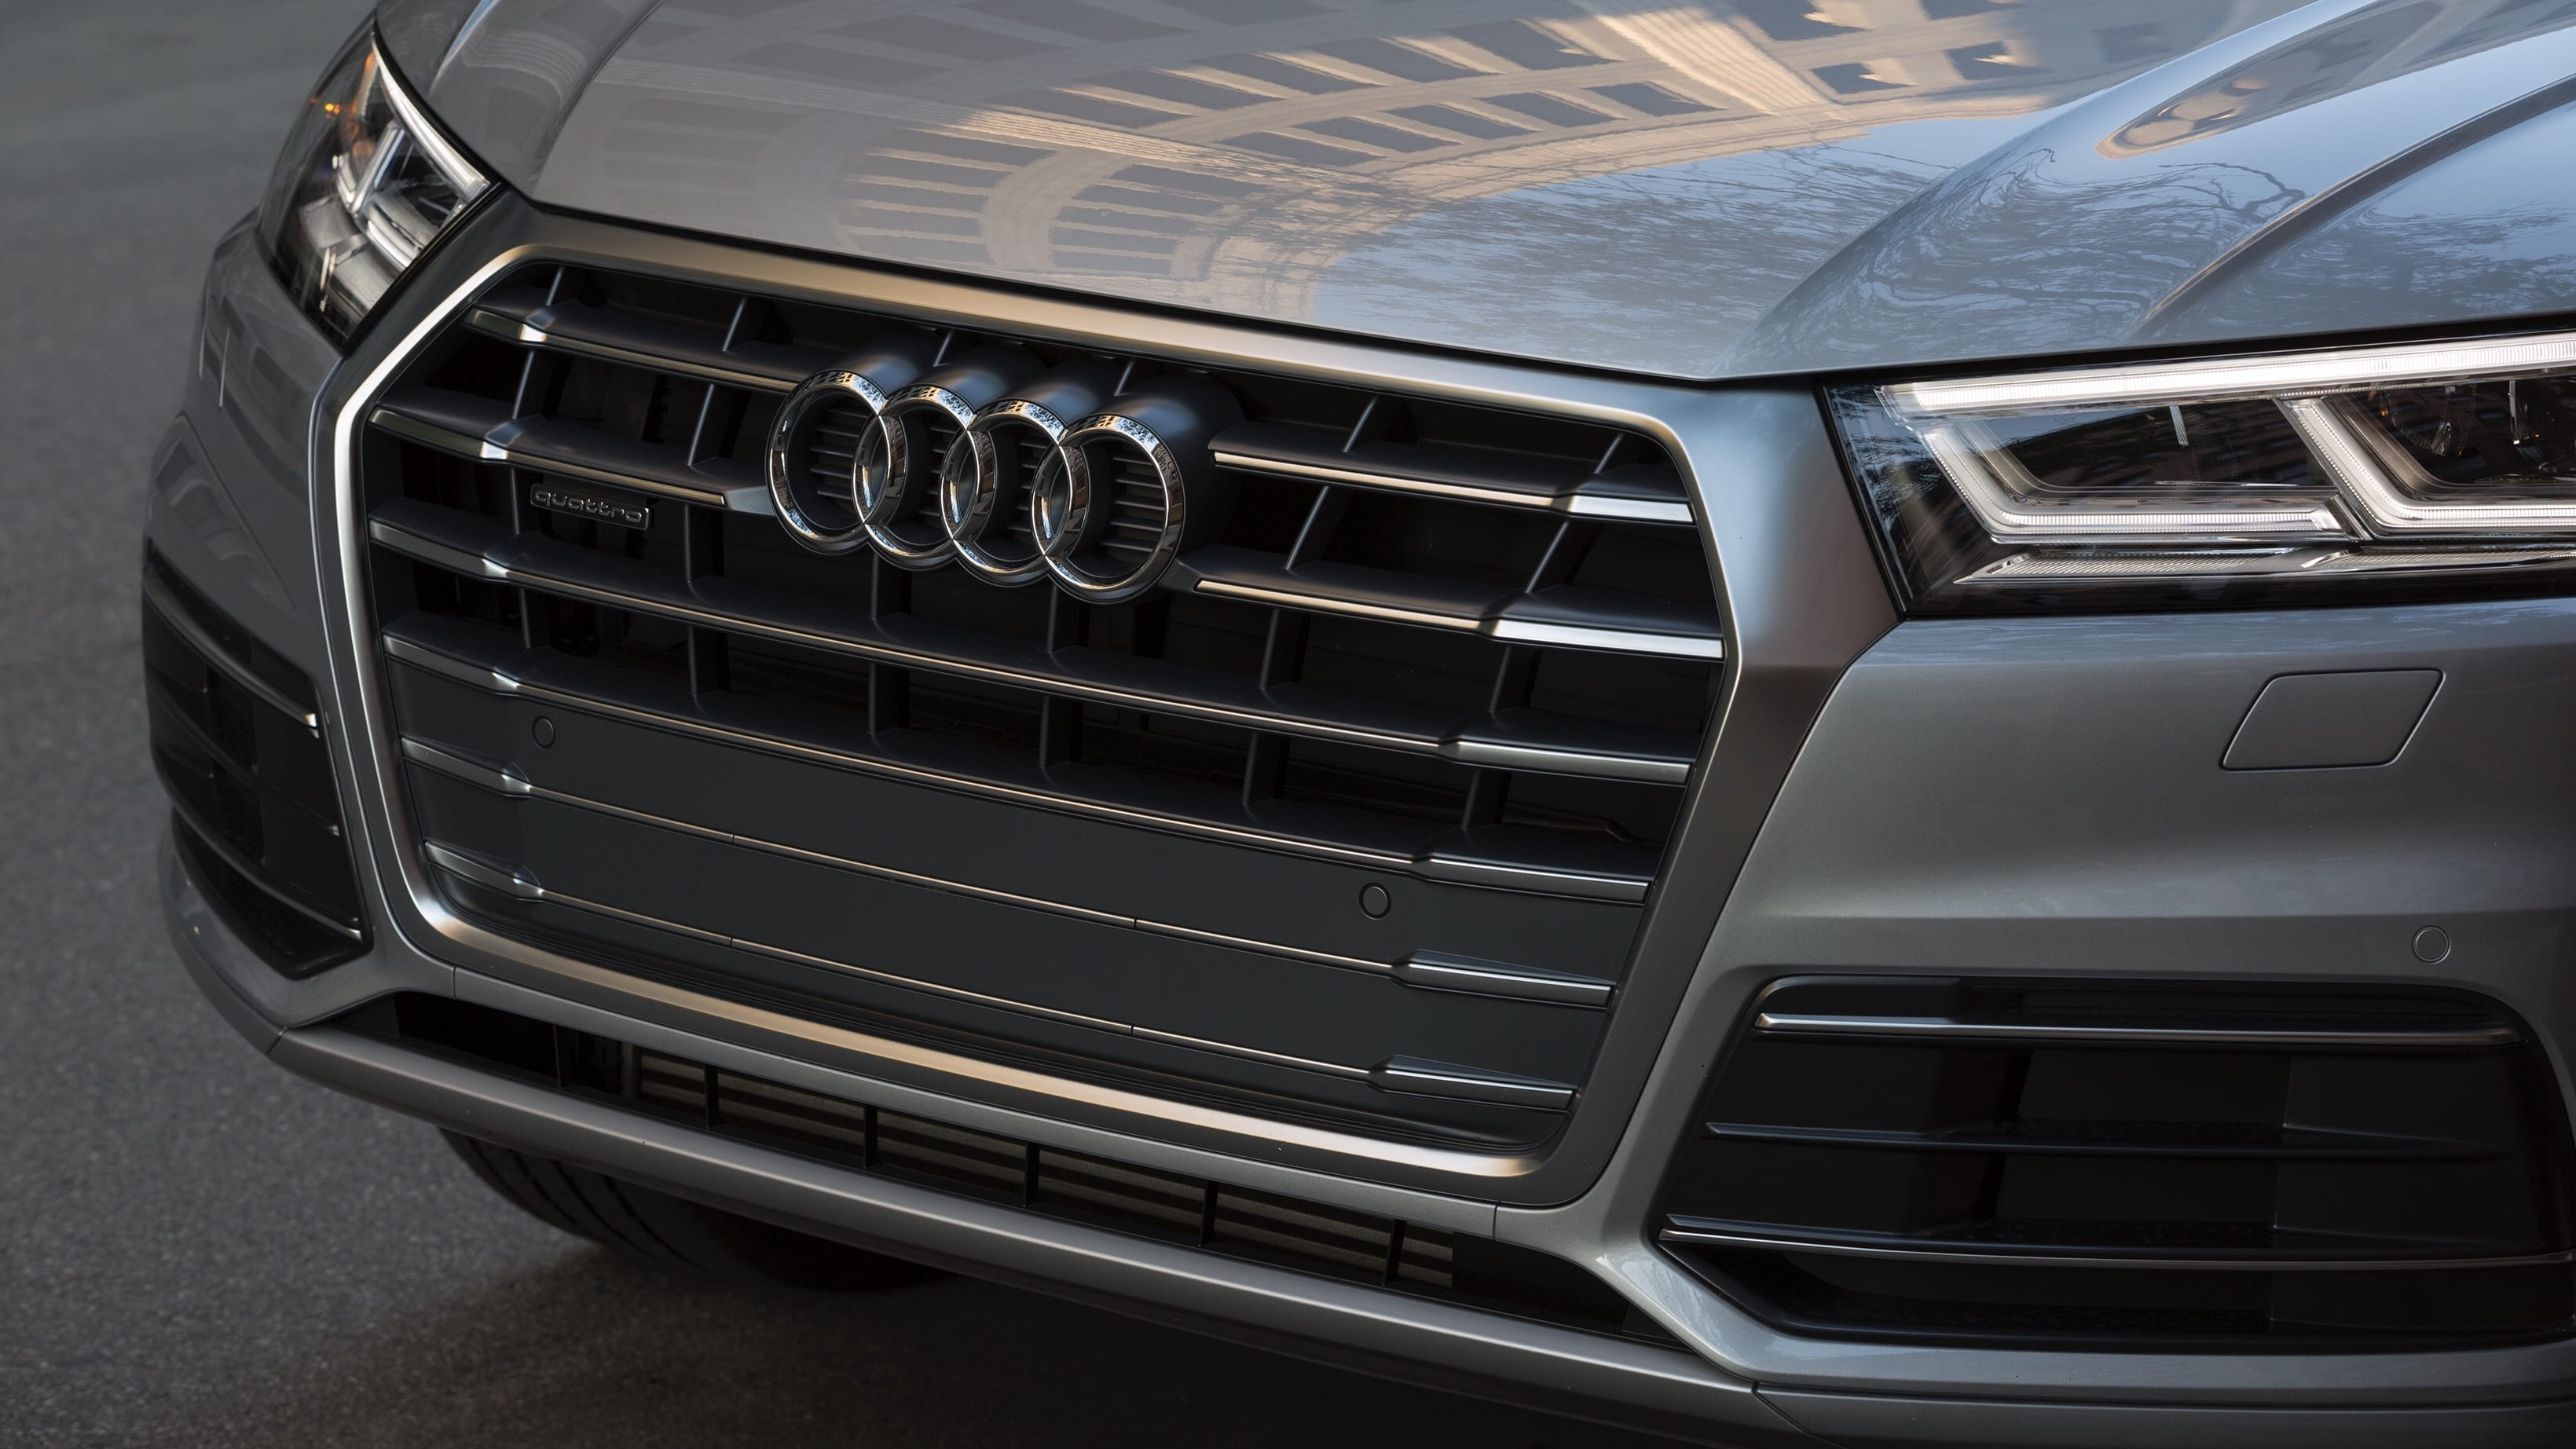 """Audi apologises for Dieselgate scandal, says it will """"never happen again"""""""